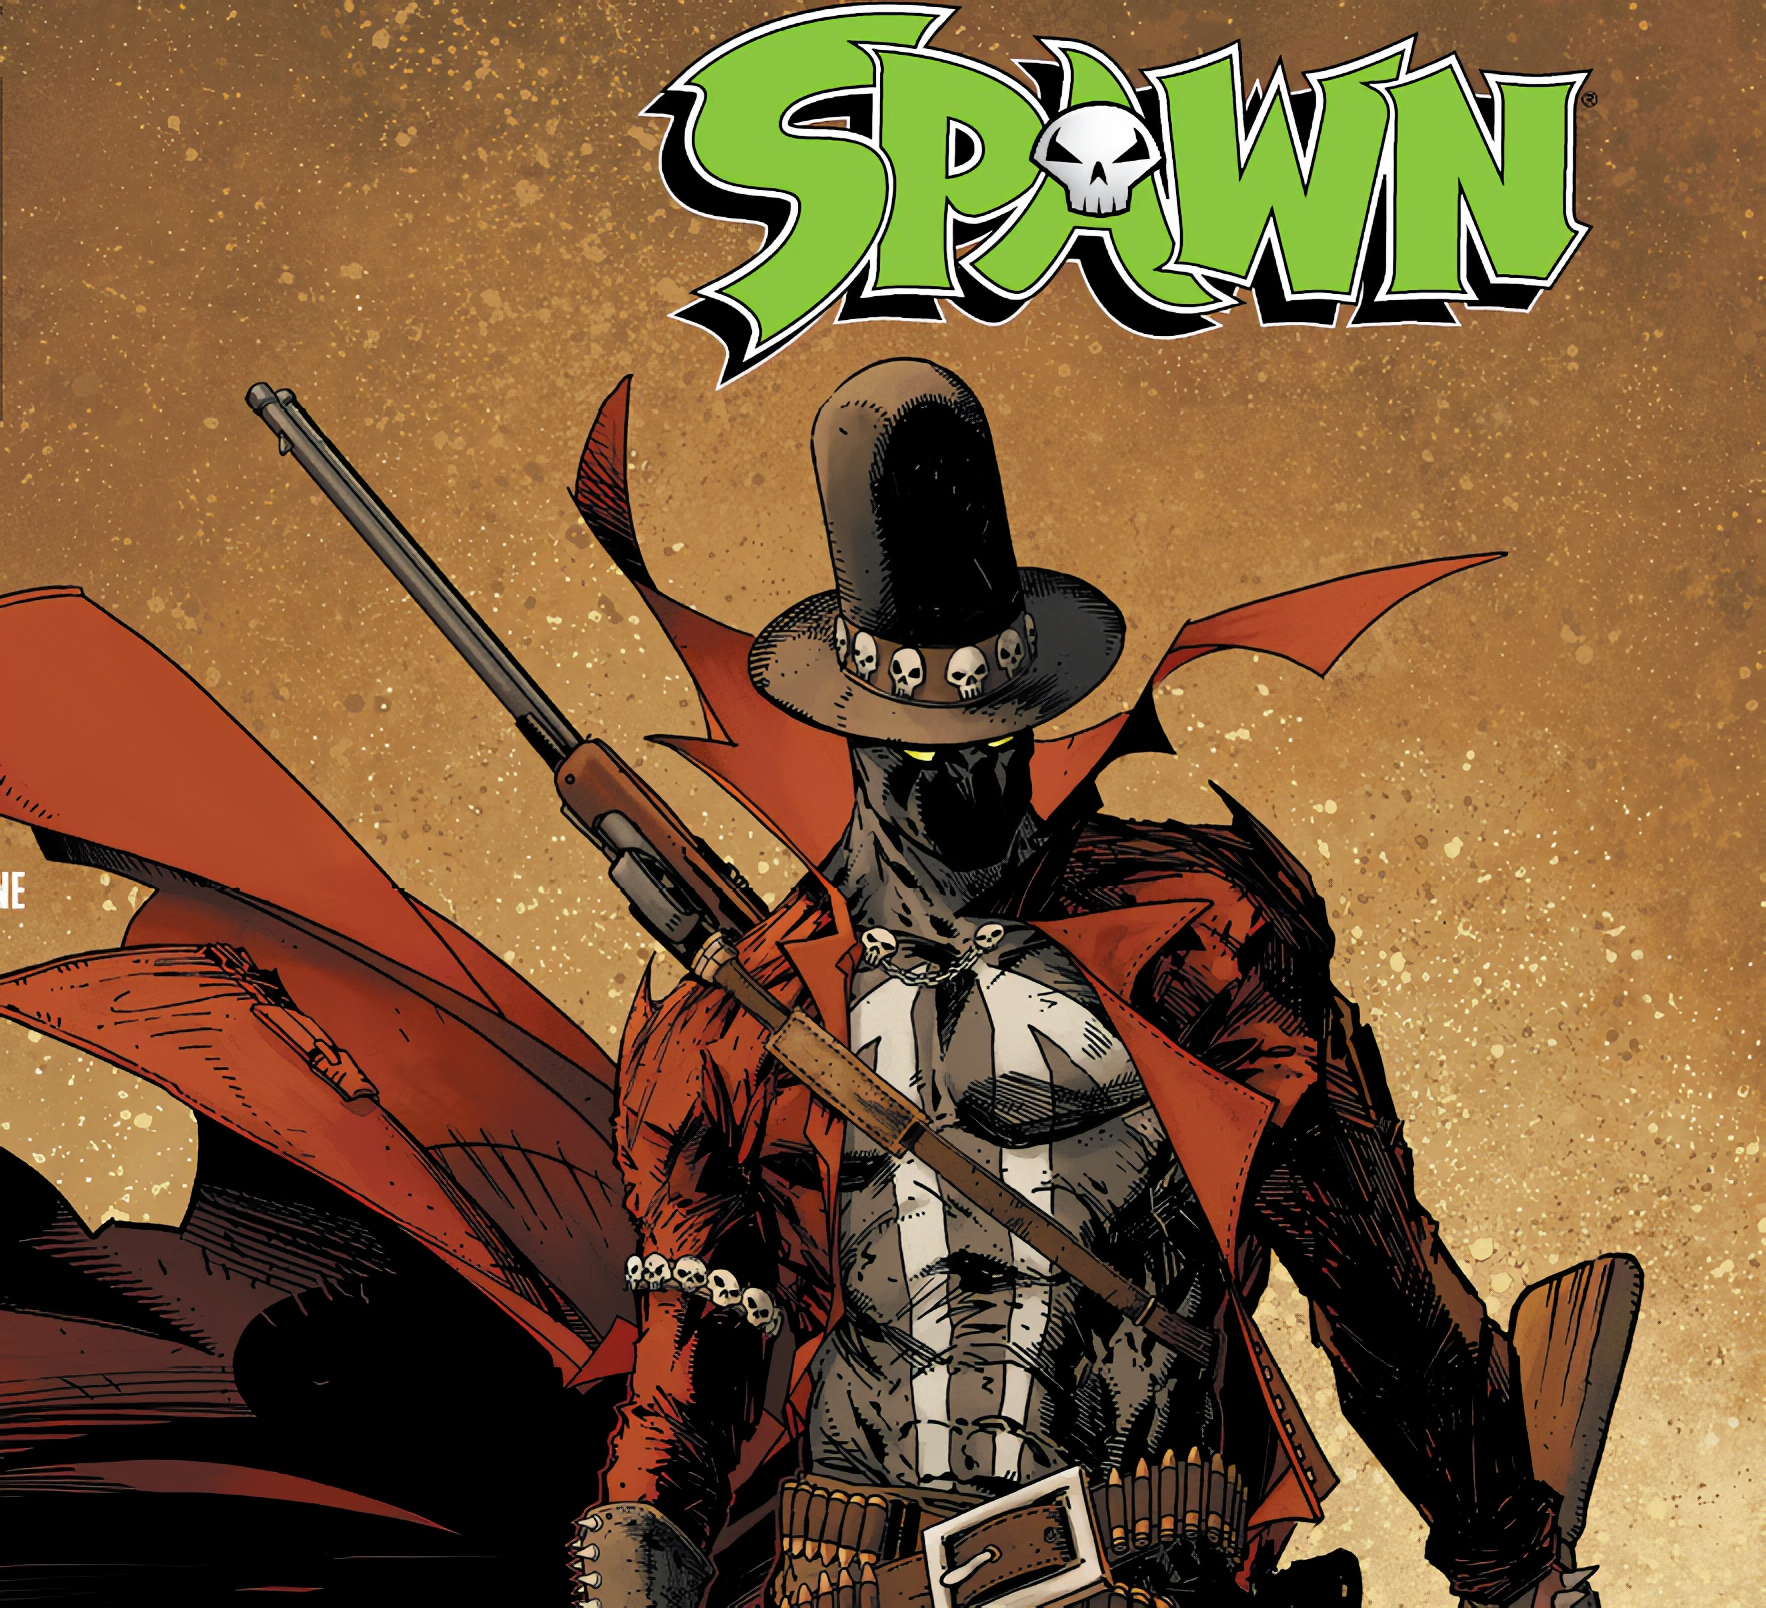 Spawn is selling like hotcakes with issue #309 selling out and going back to print.